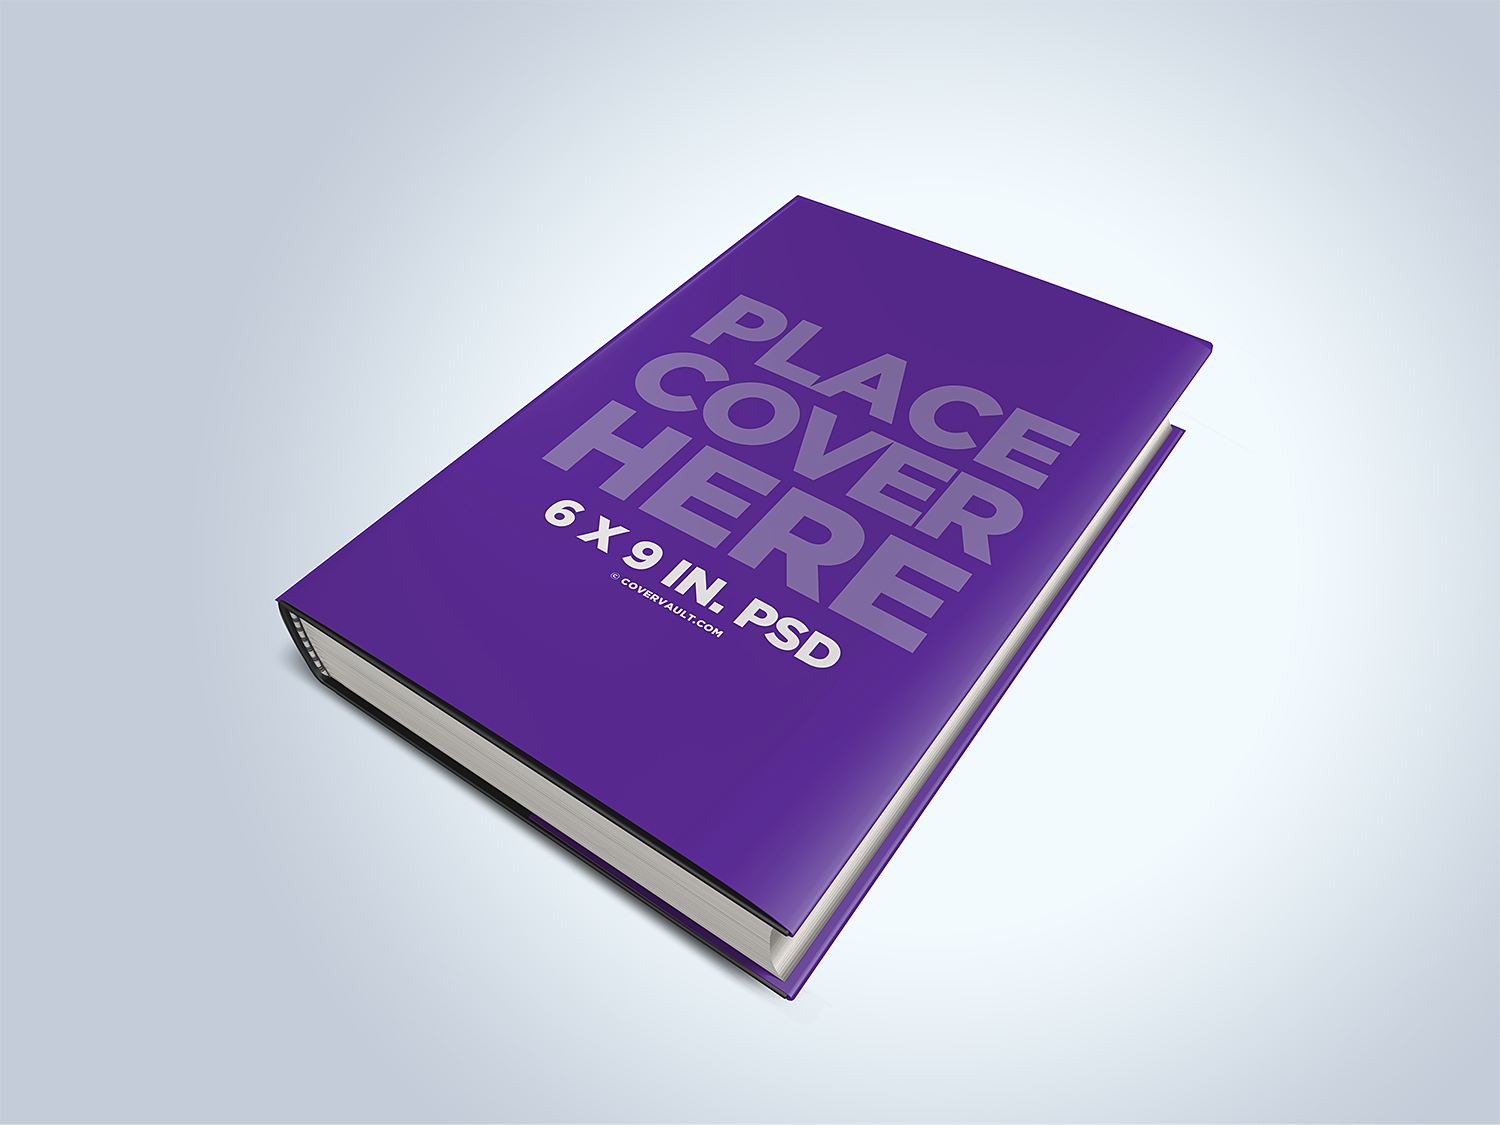 Hardcover Dust Jacket Mockup